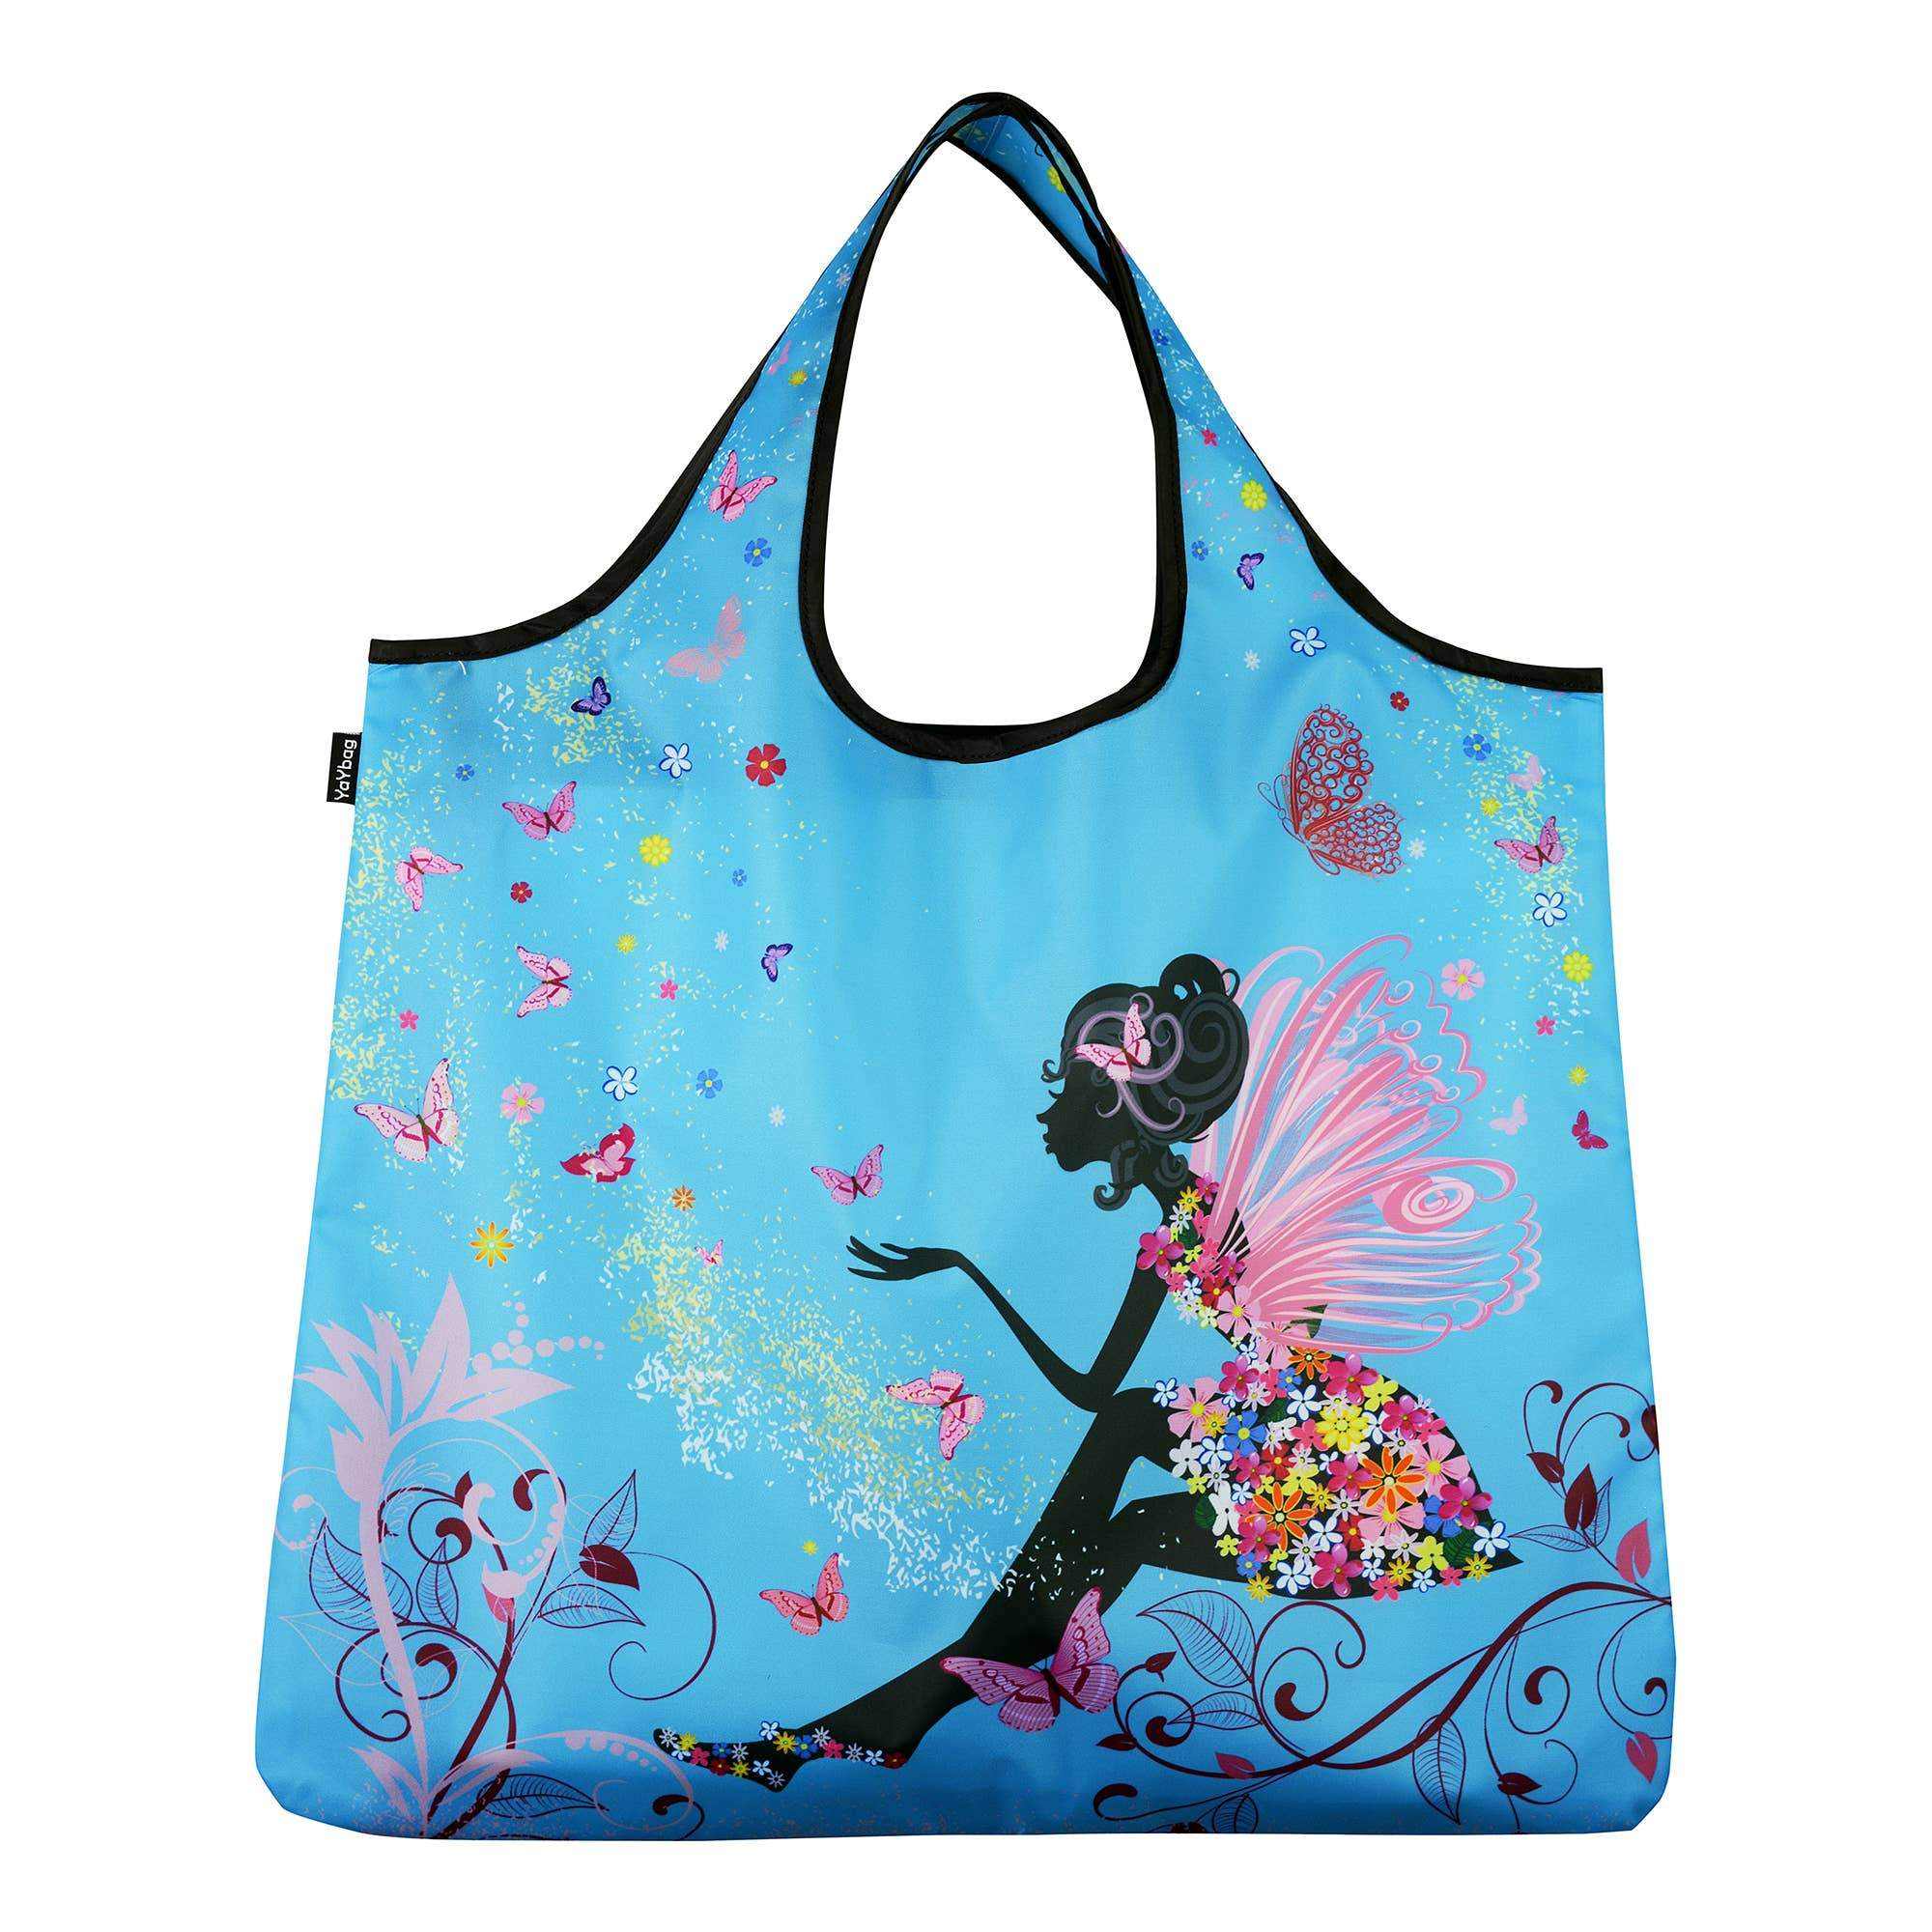 Buy YAY NOVELTY - YaYbag ORIGINAL - 4192 Butterfly Princess from Walking Pants Curiosities, the Most un-General Gift Store in Downtown Memphis, Tennessee!